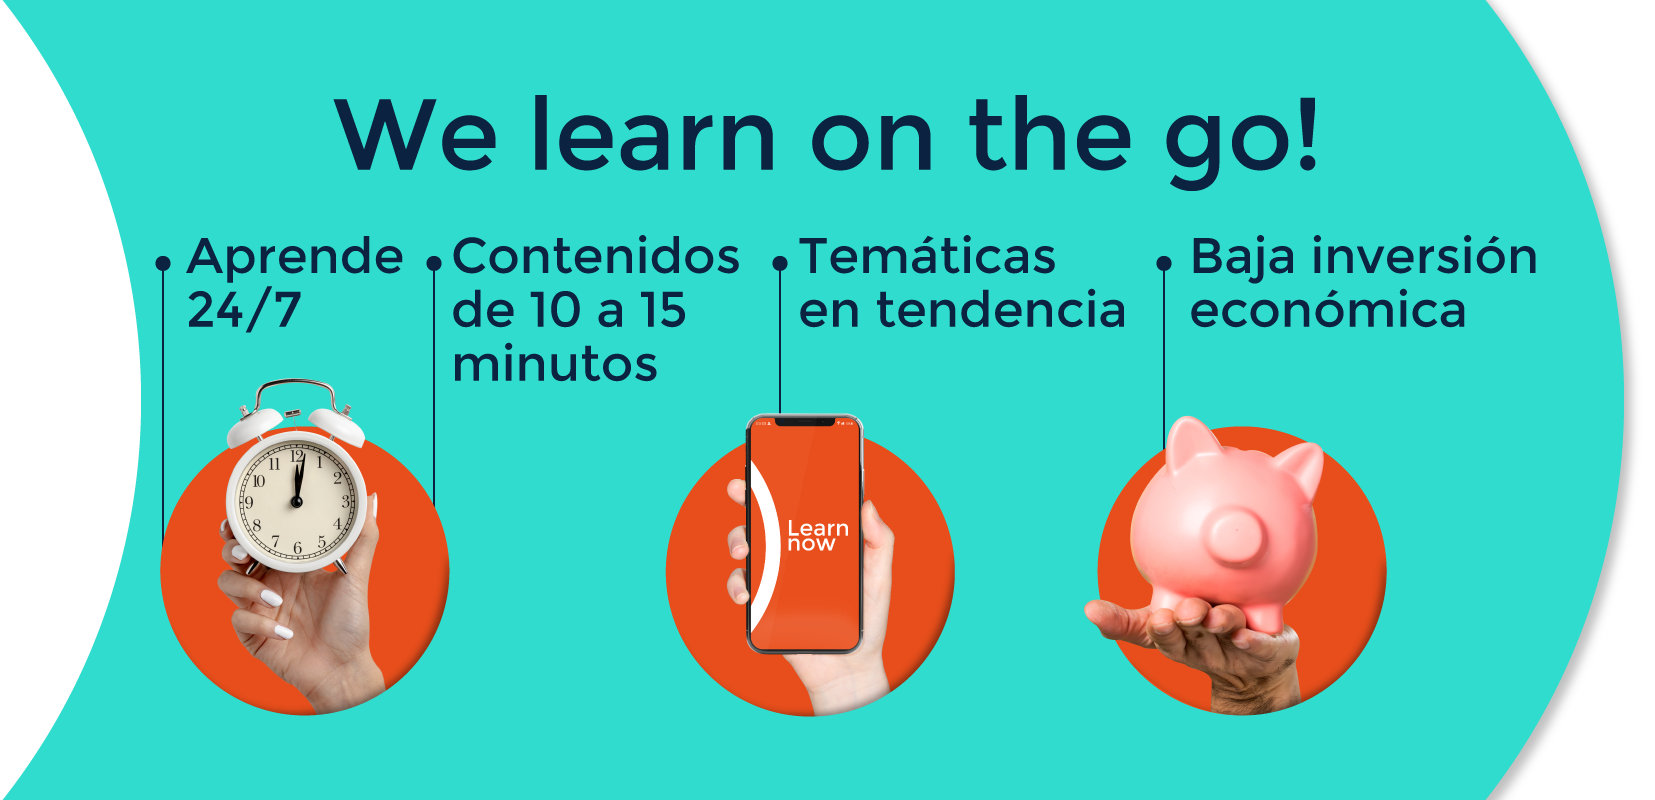 Beneficios de Lean & Go